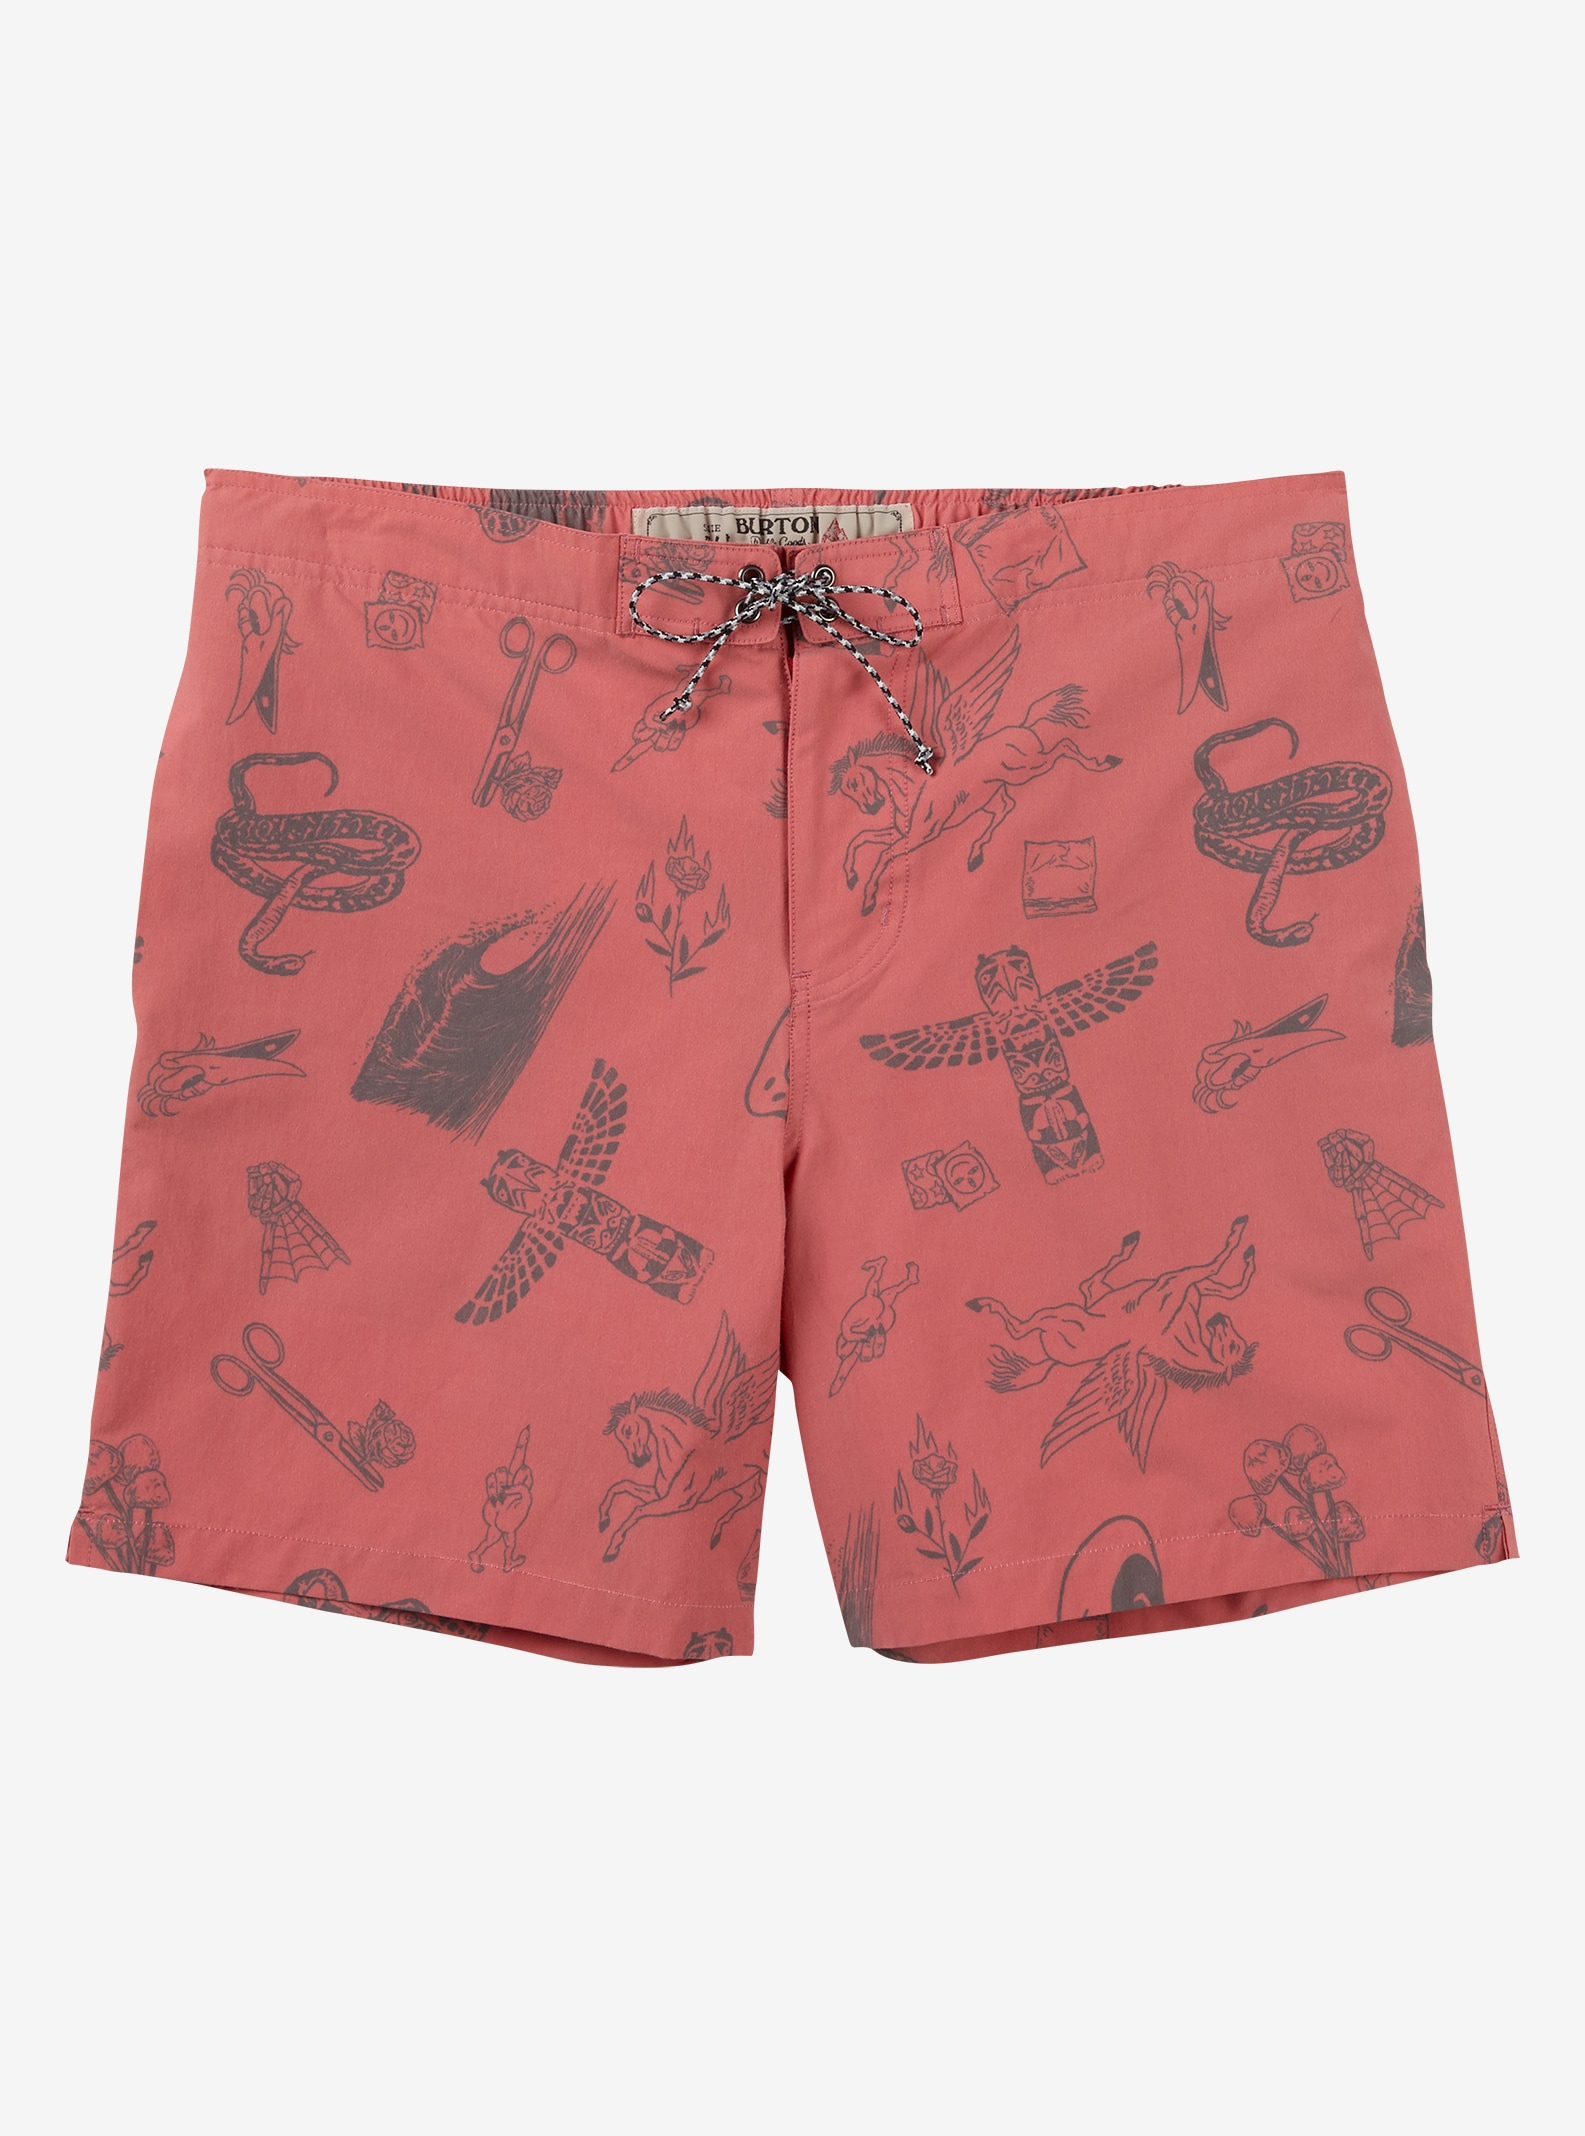 Burton Creekside Boardshort shown in Tandori Freetime